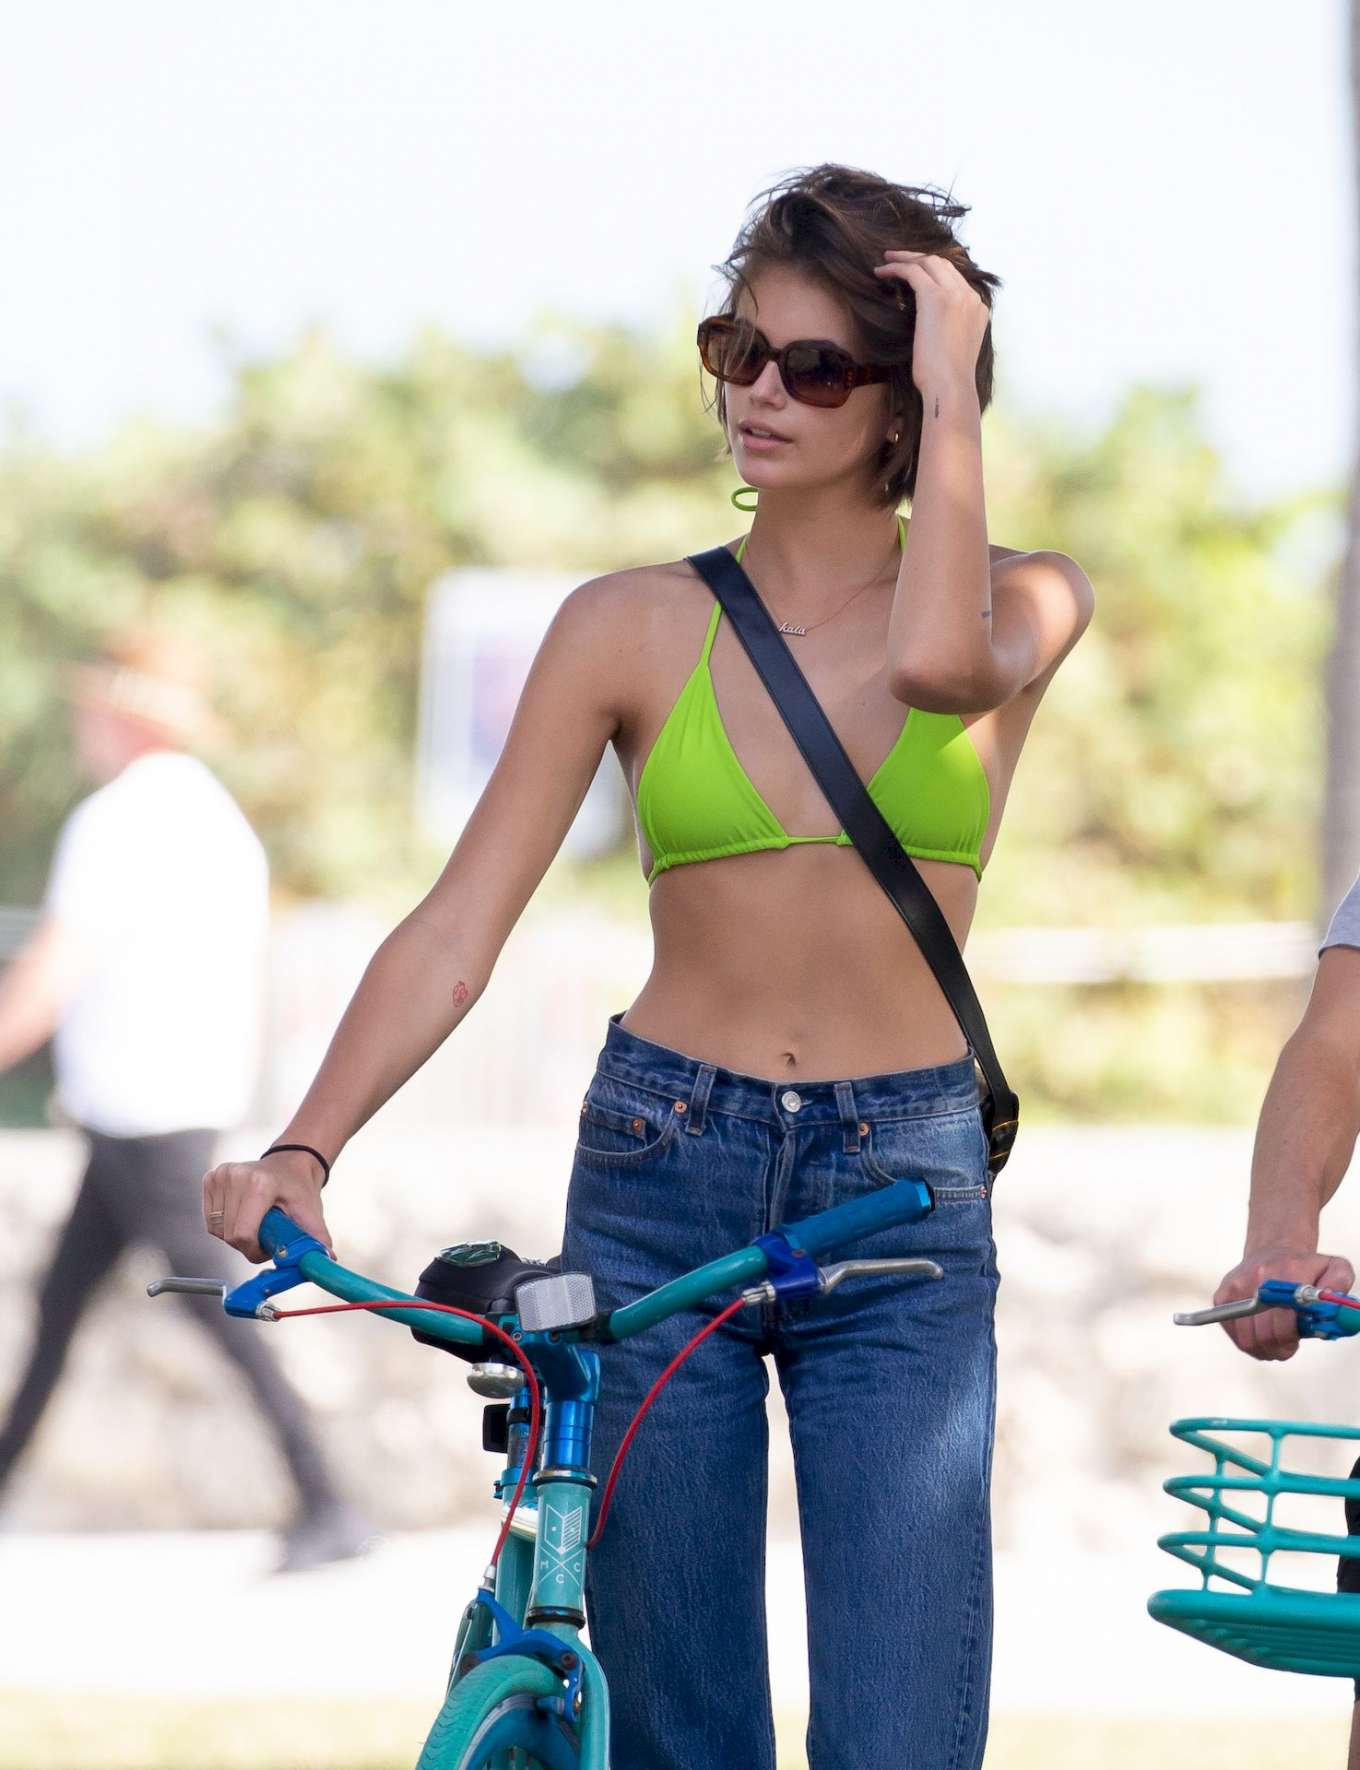 Kaia Gerber in Bikini Top - Bike Riding in Miami